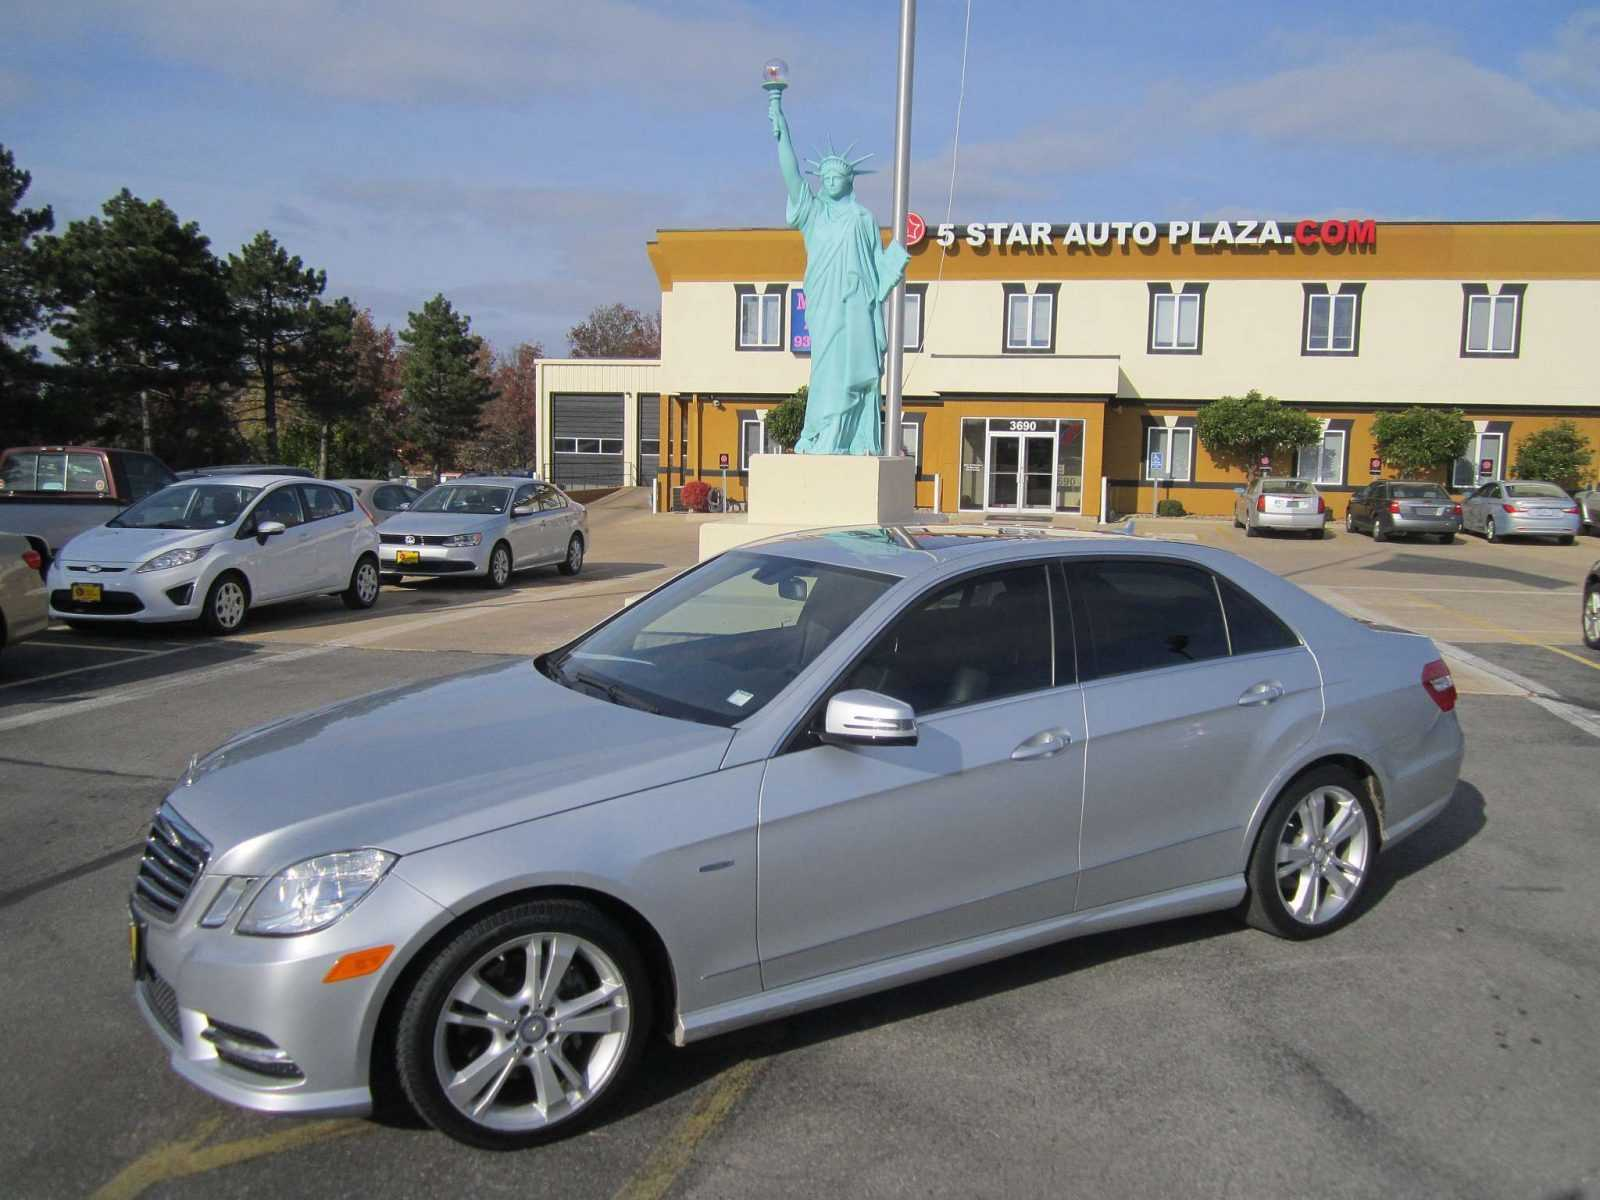 Pre-Owned Mercedes Cars for Sale in St. Louis